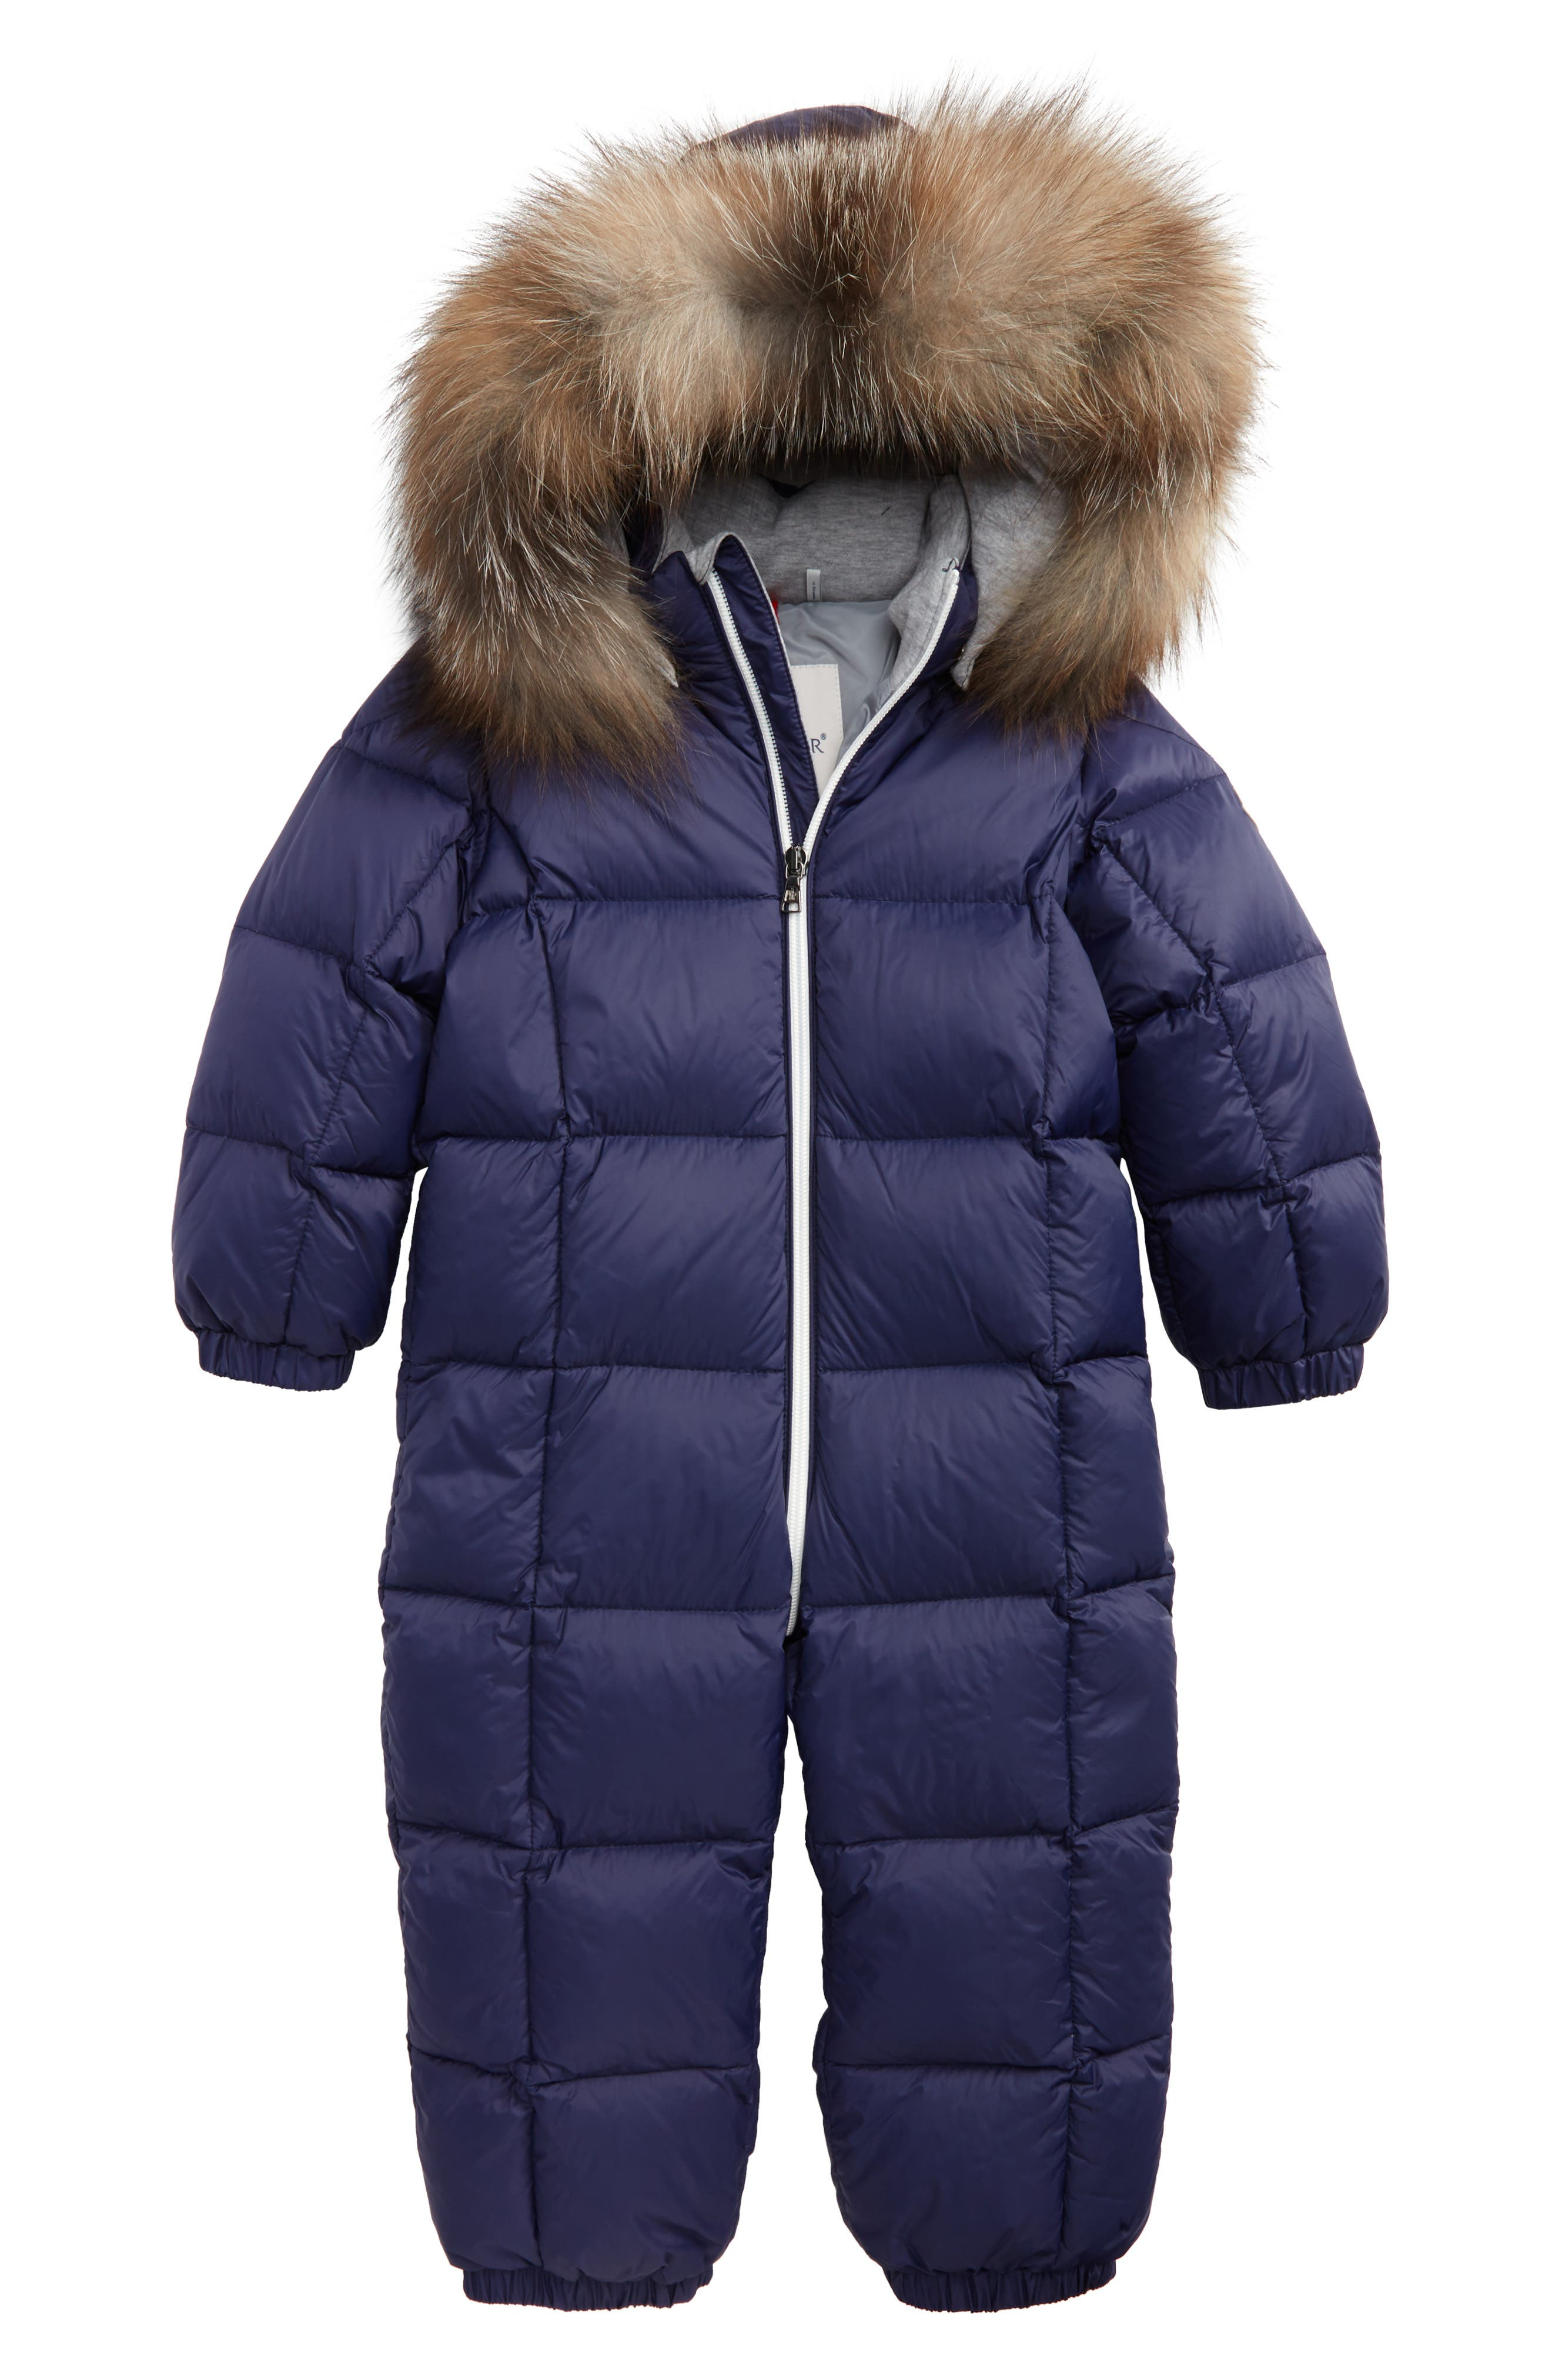 Main Image - Moncler Jean Down Bunting with Genuine Fox Fur Trim (Baby & Toddler)